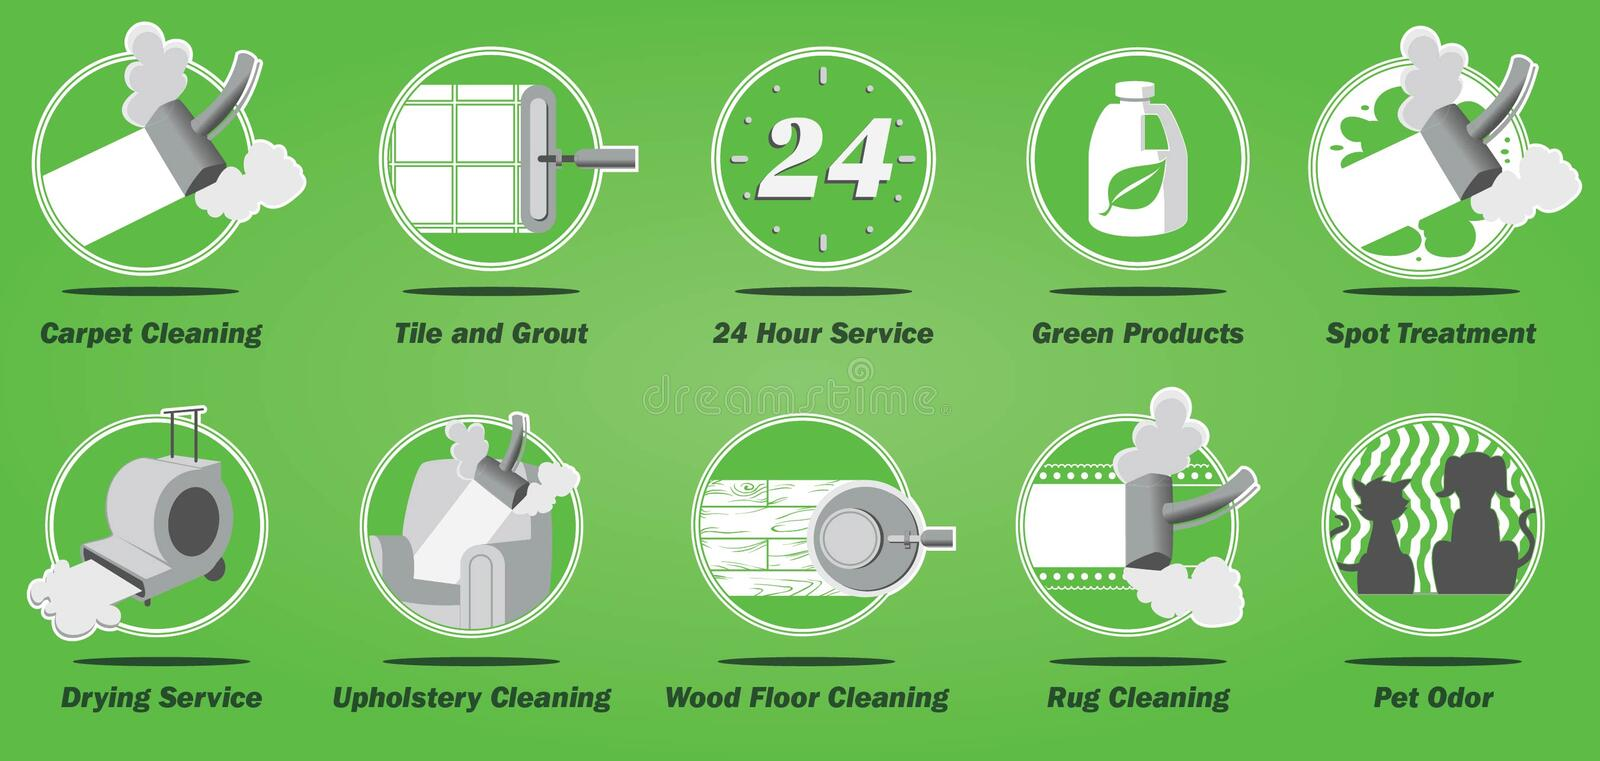 cleaning business services